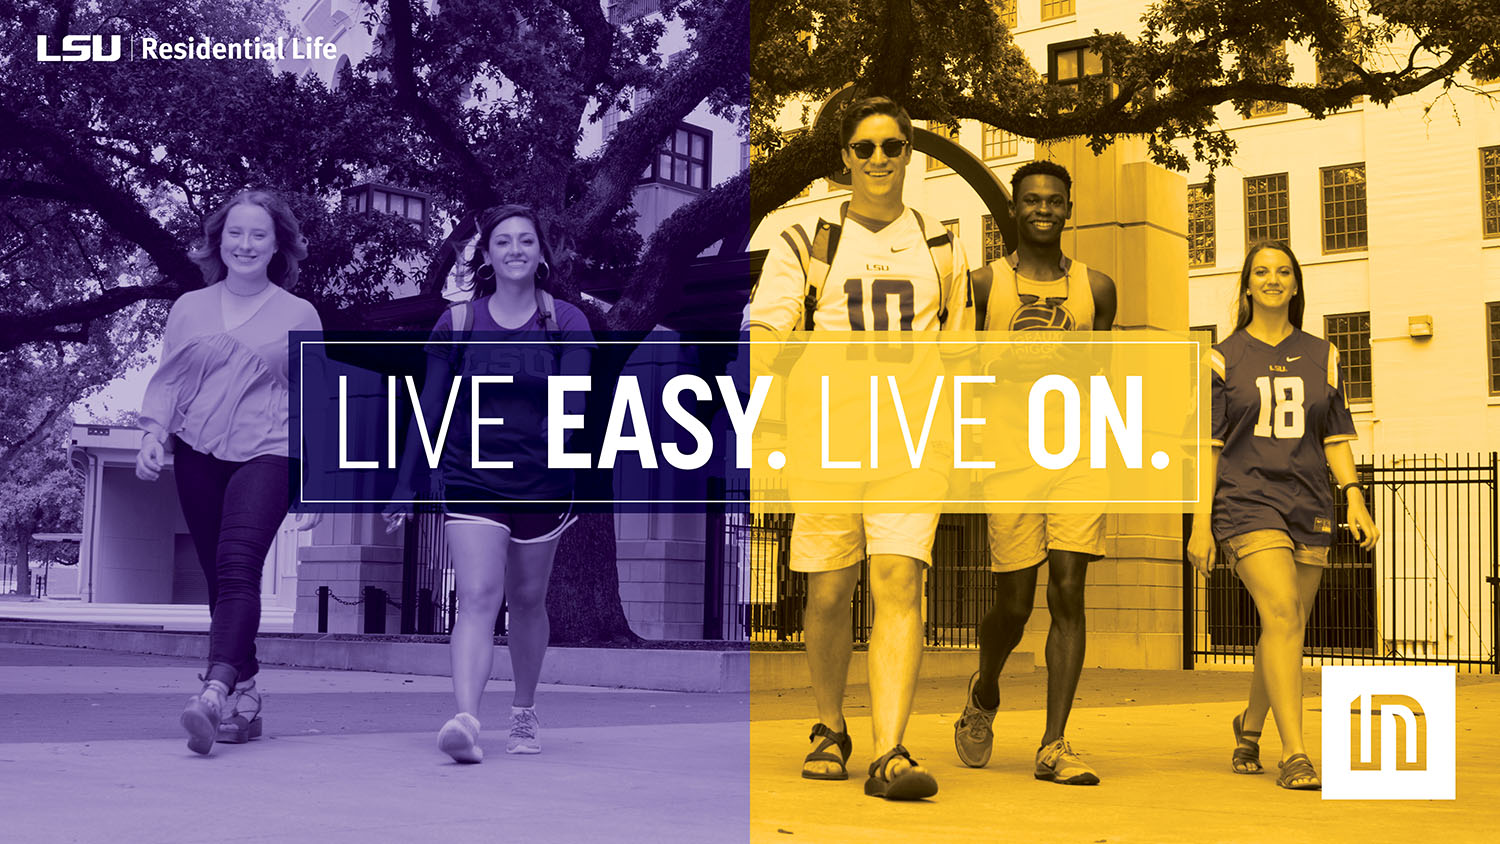 Nicholson Gateway | Live Easy. Live On.